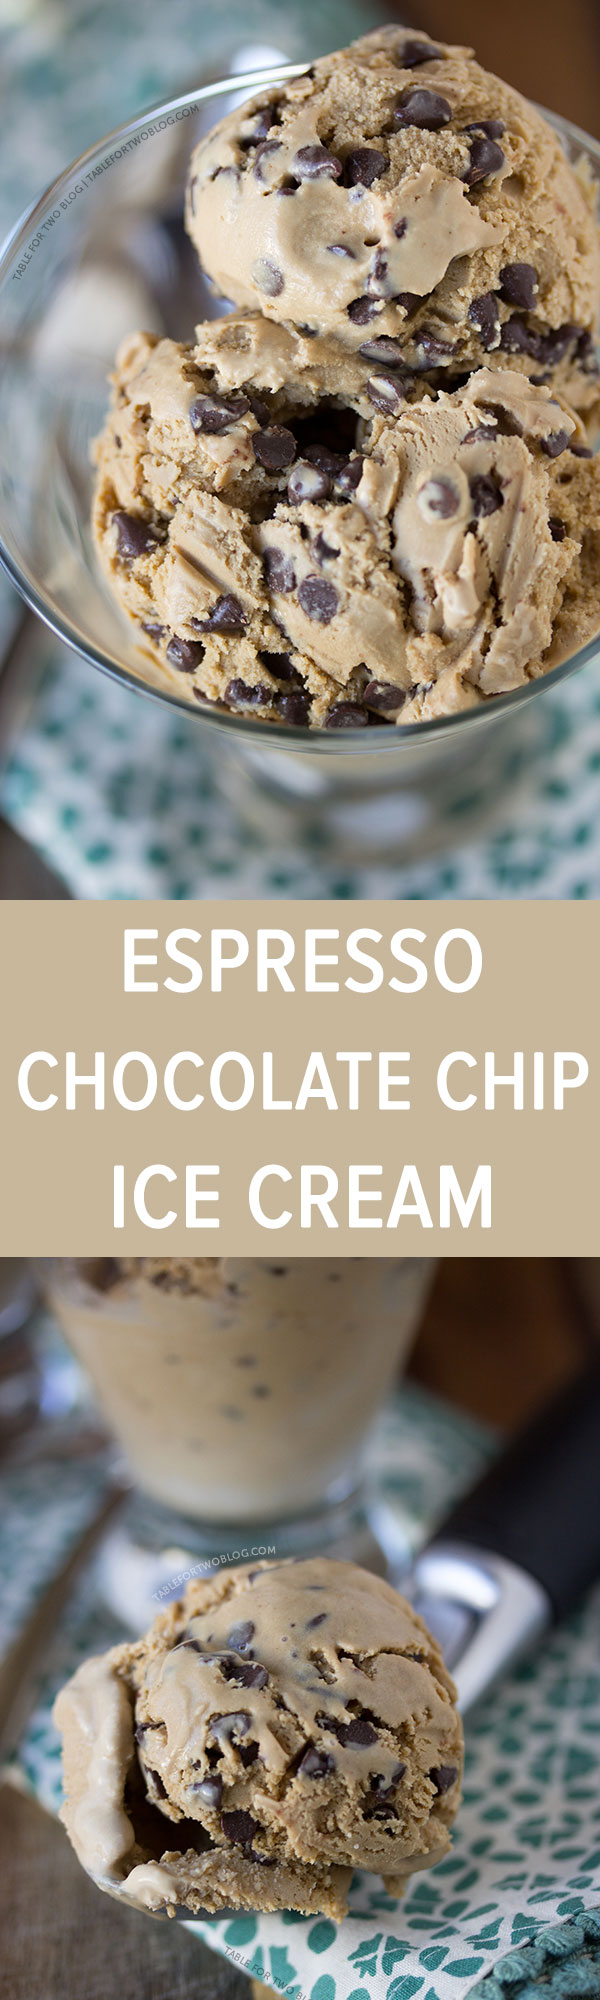 Espresso Chocolate Chip Ice Cream from www.tablefortwoblog.com